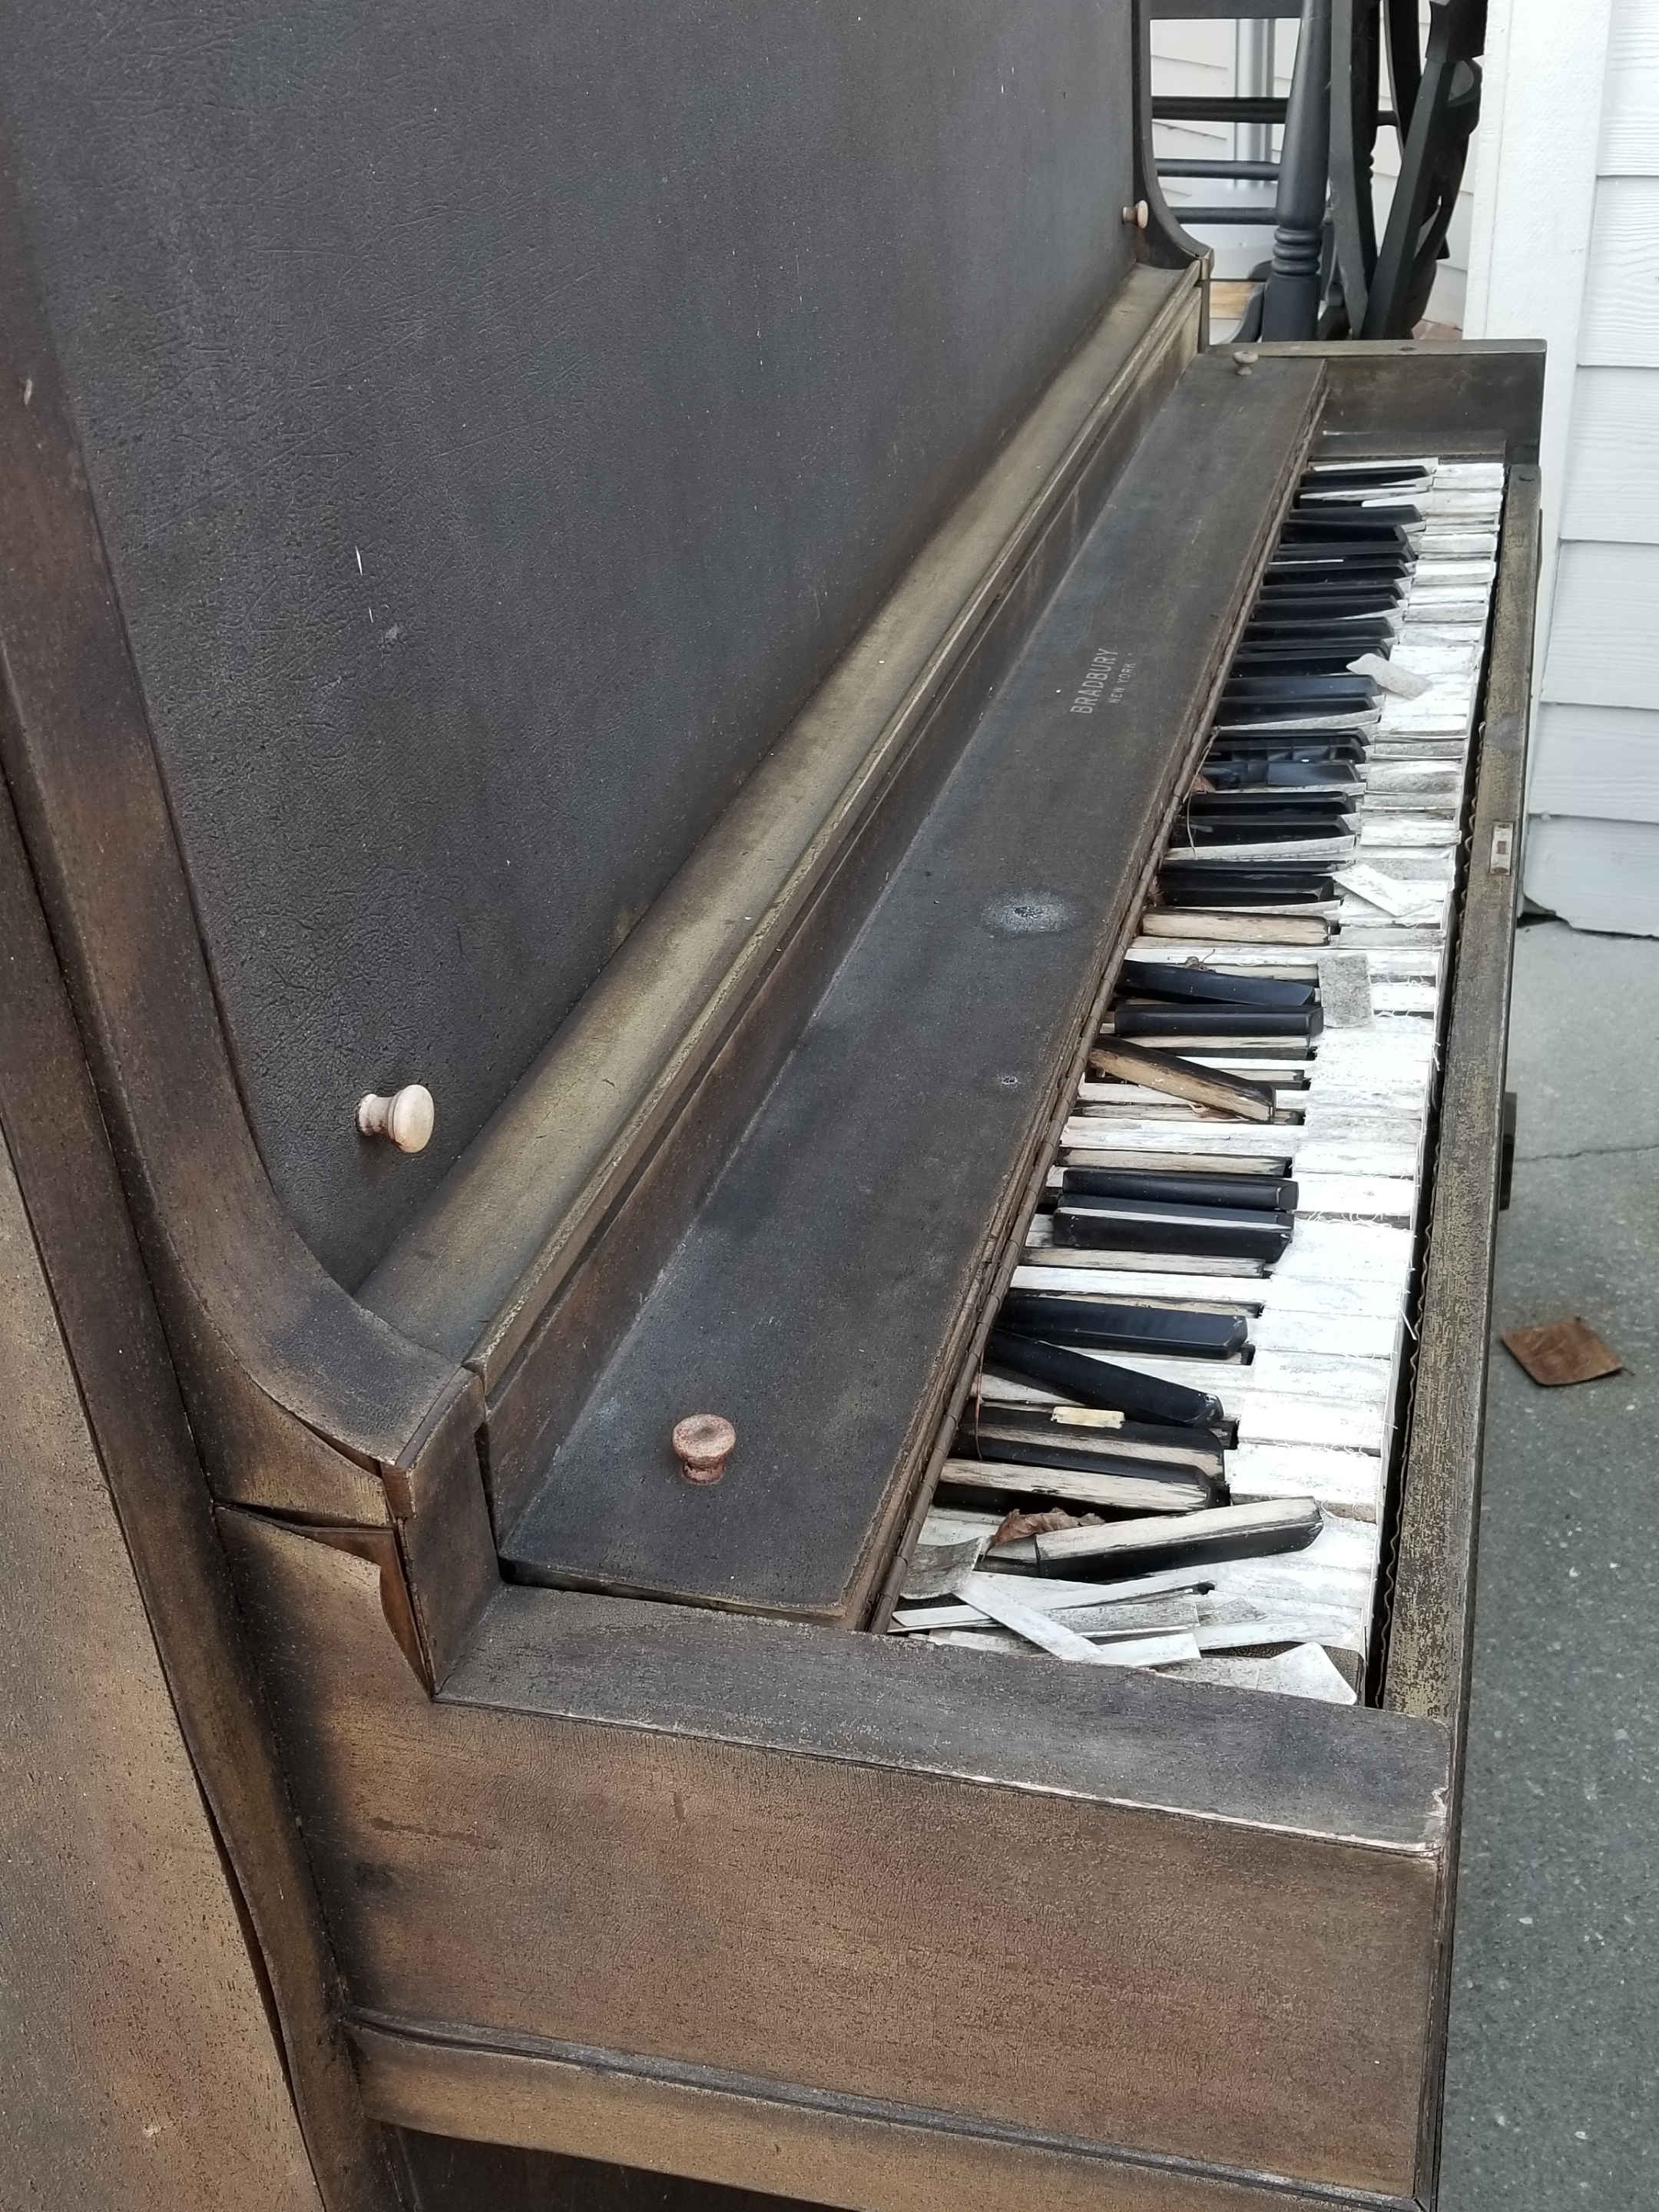 We saw plenty of hurricane damage - shingles and siding missing from homes, docks ripped clear away from pilings, but this piano stood out as representative of how quickly a storm can destroy things.